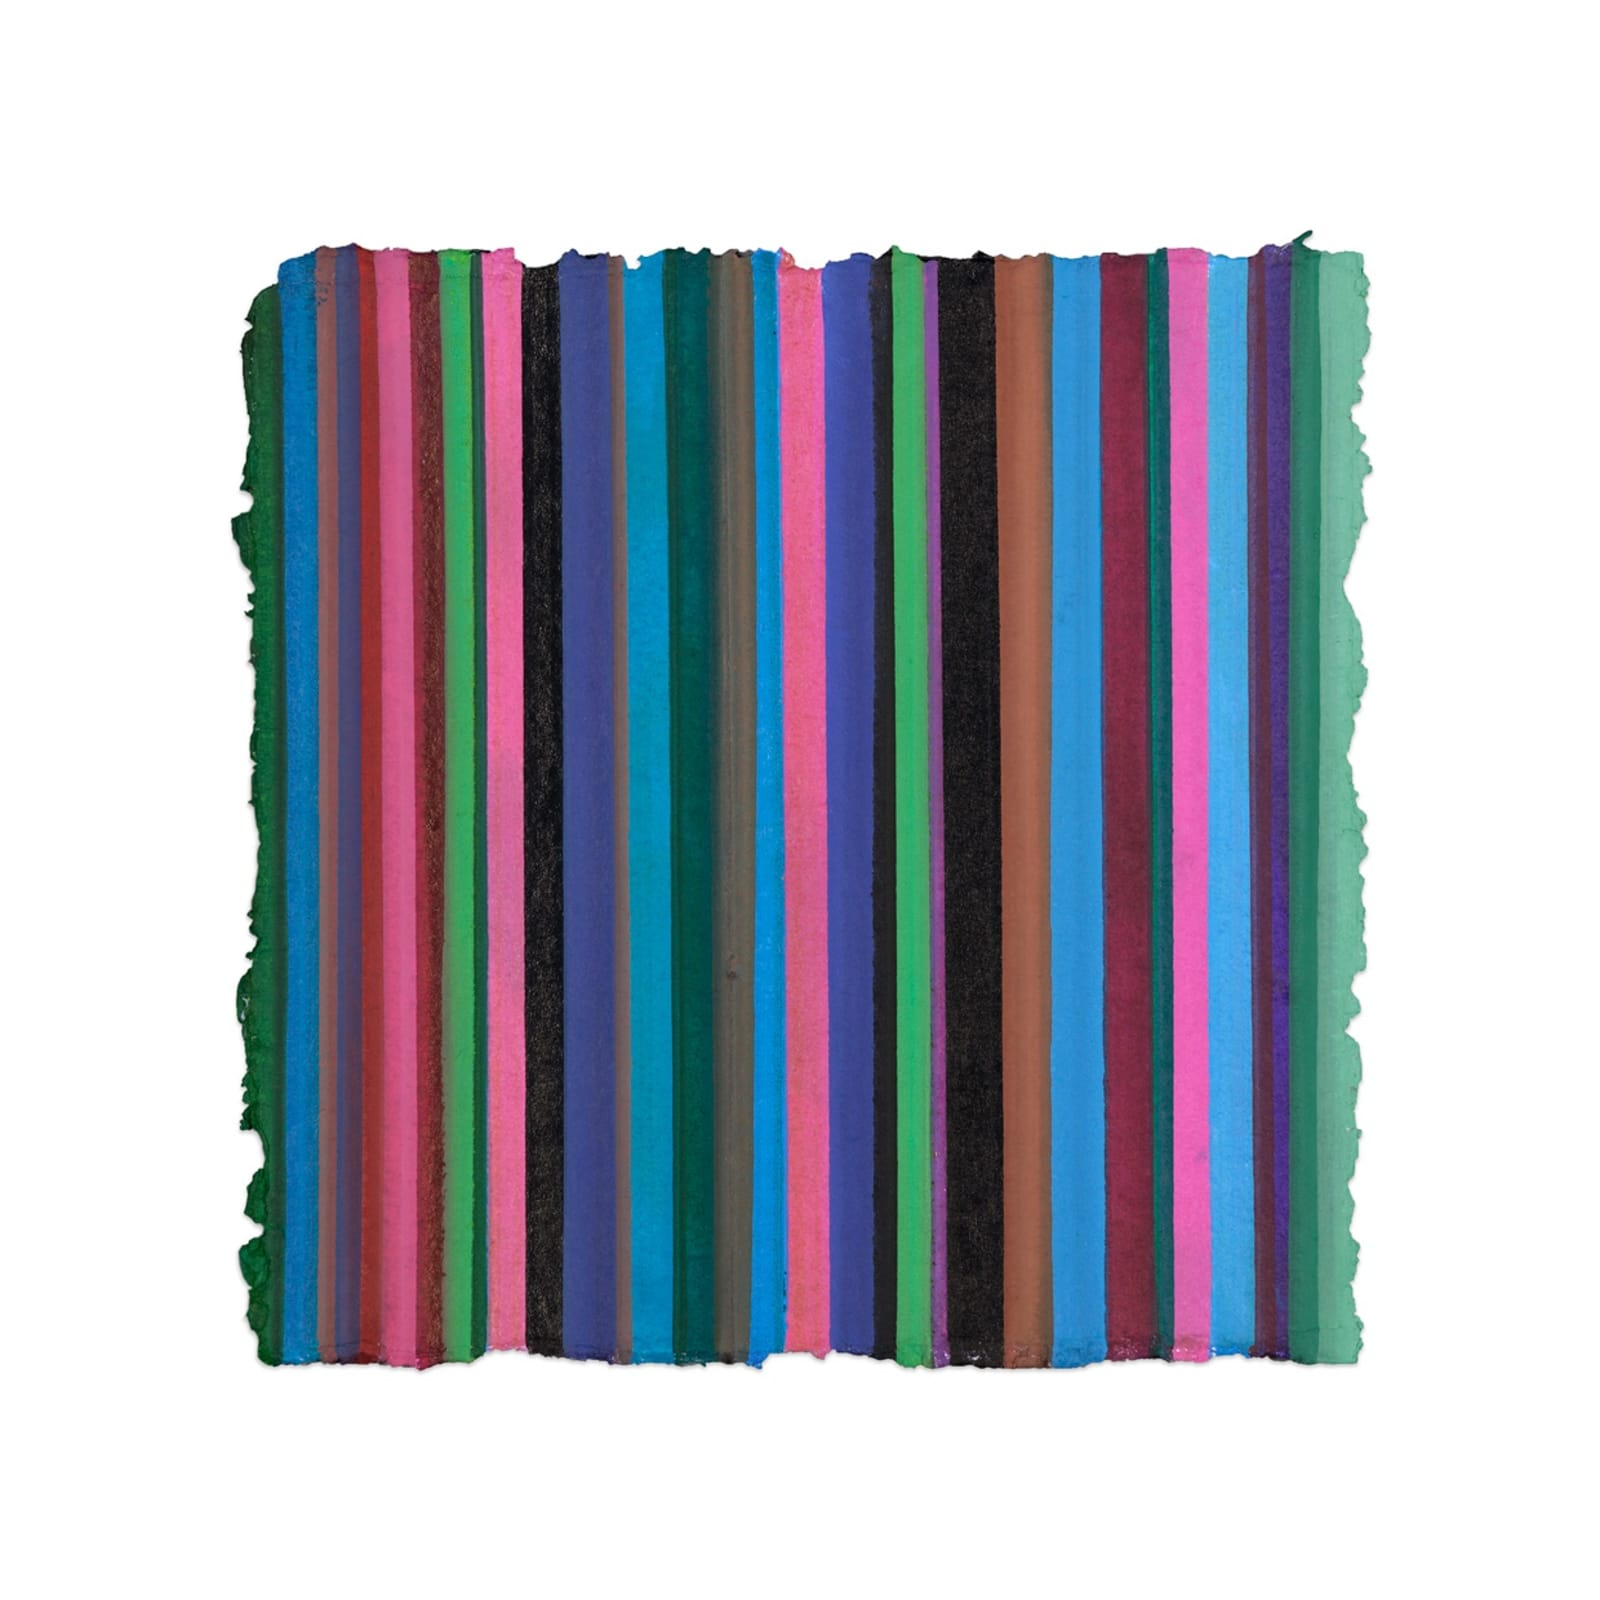 Eugénie Paultre 2019 Untitled lines colours galerie Erna Hecey